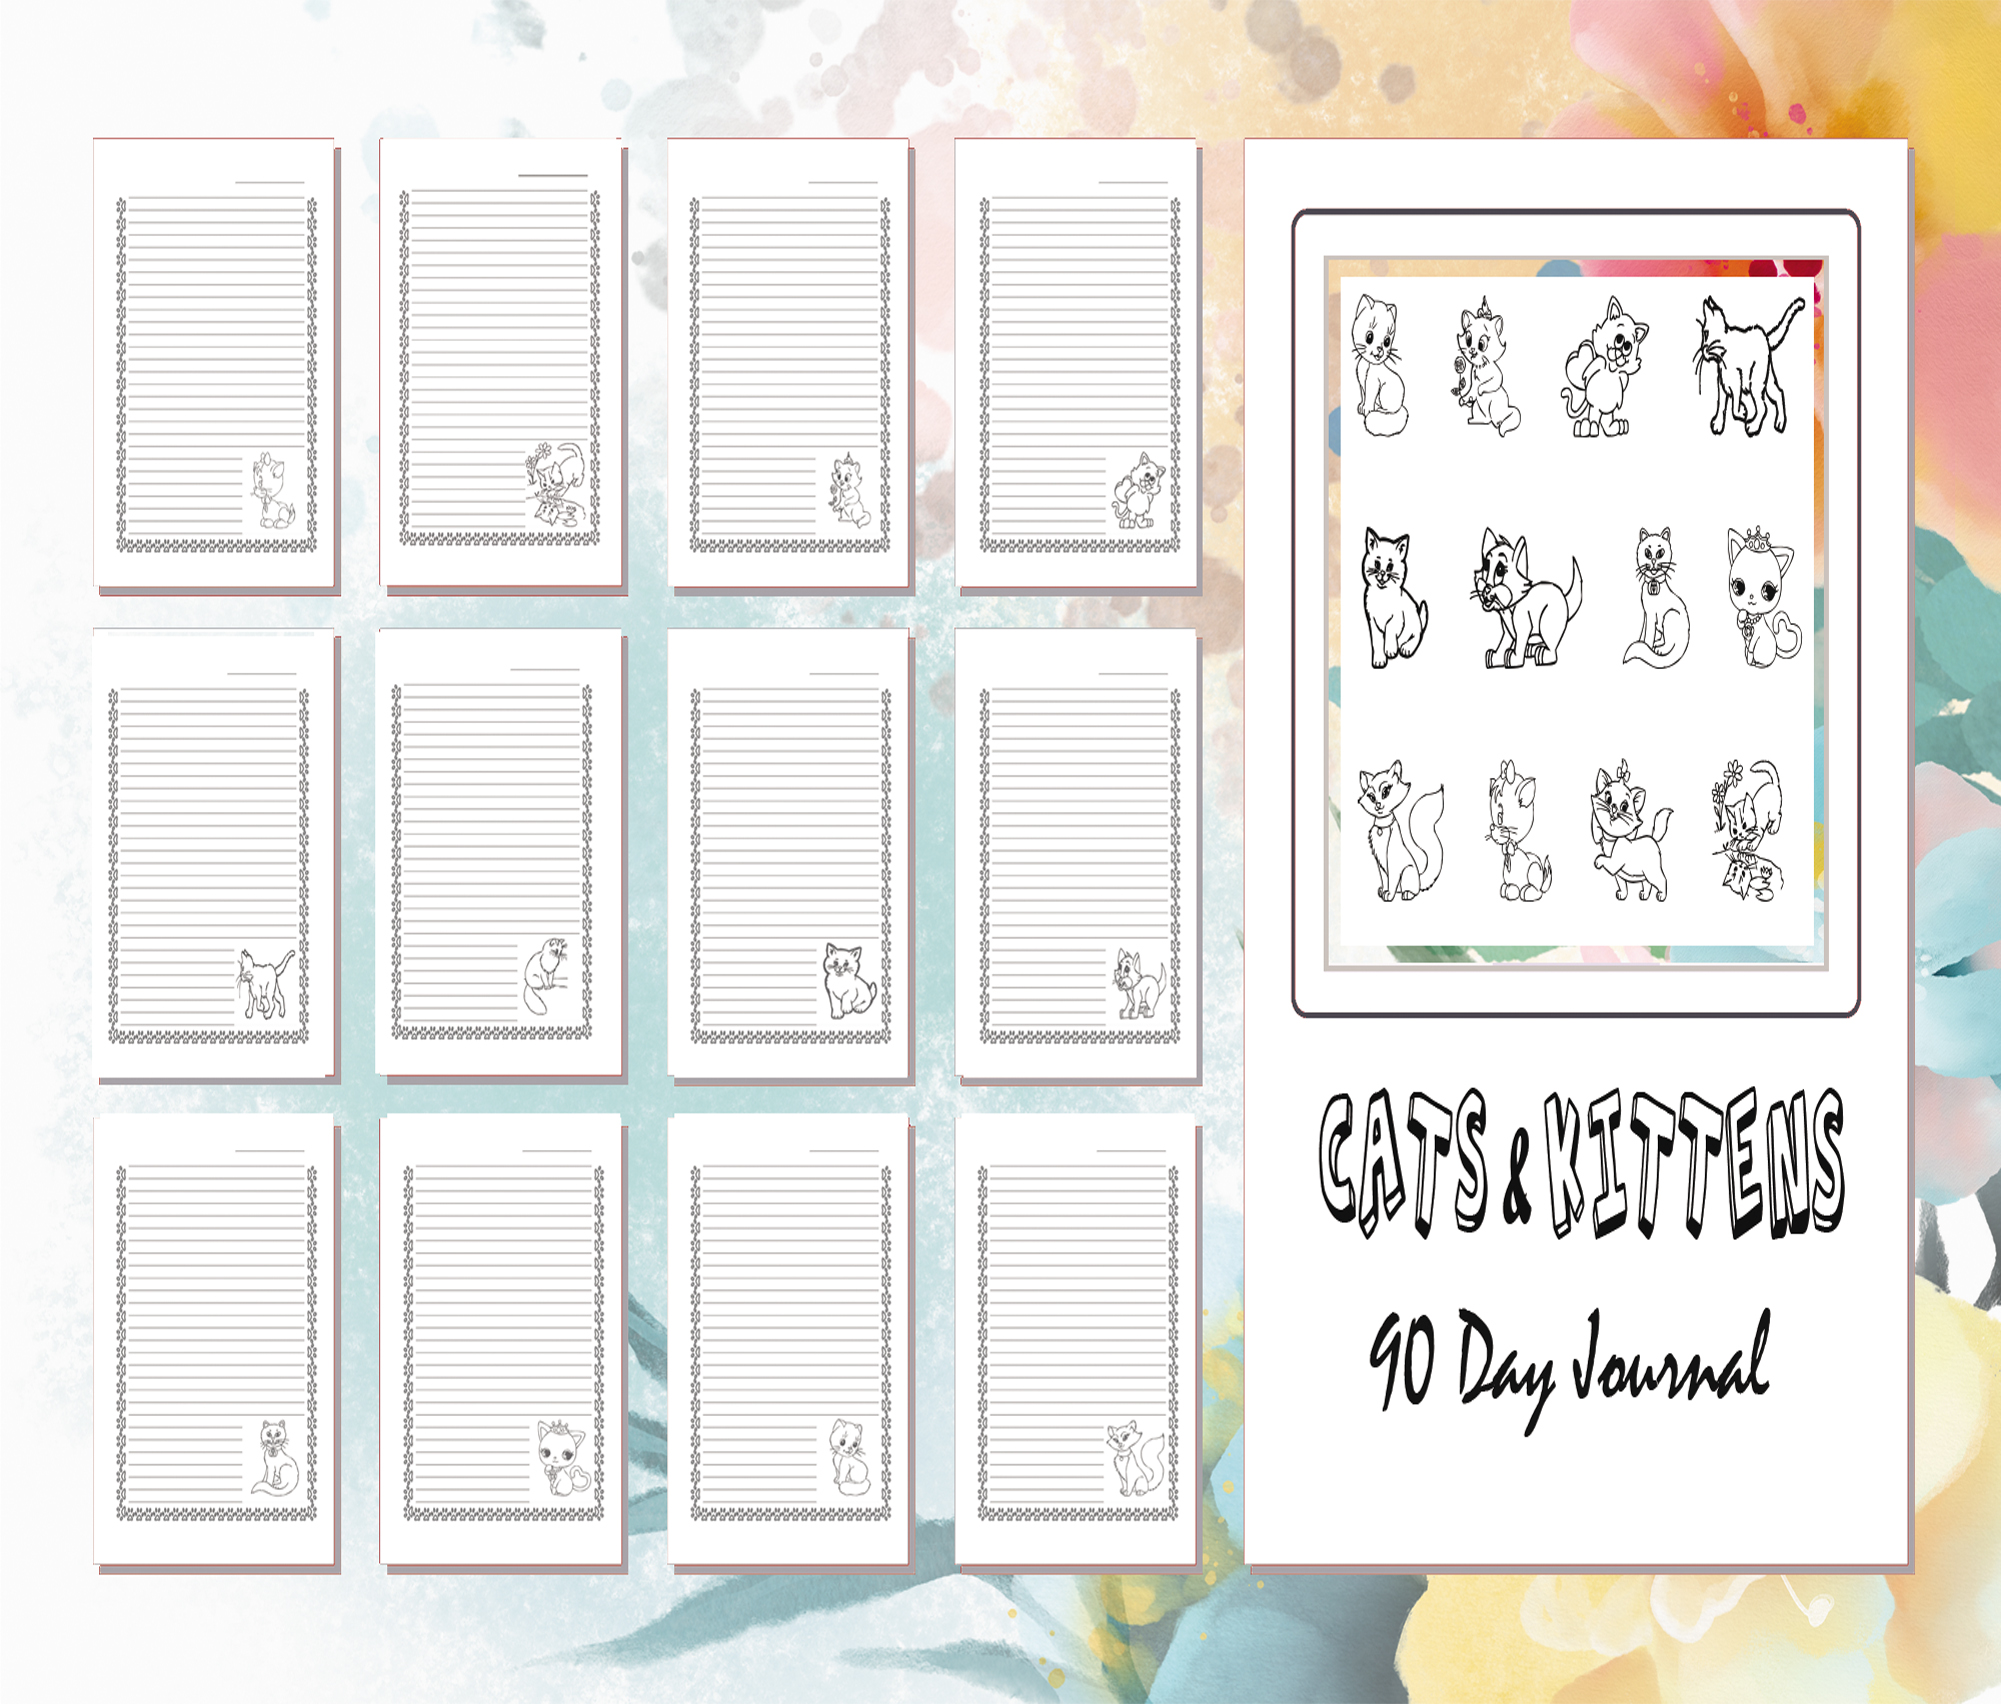 cats and kittens journal